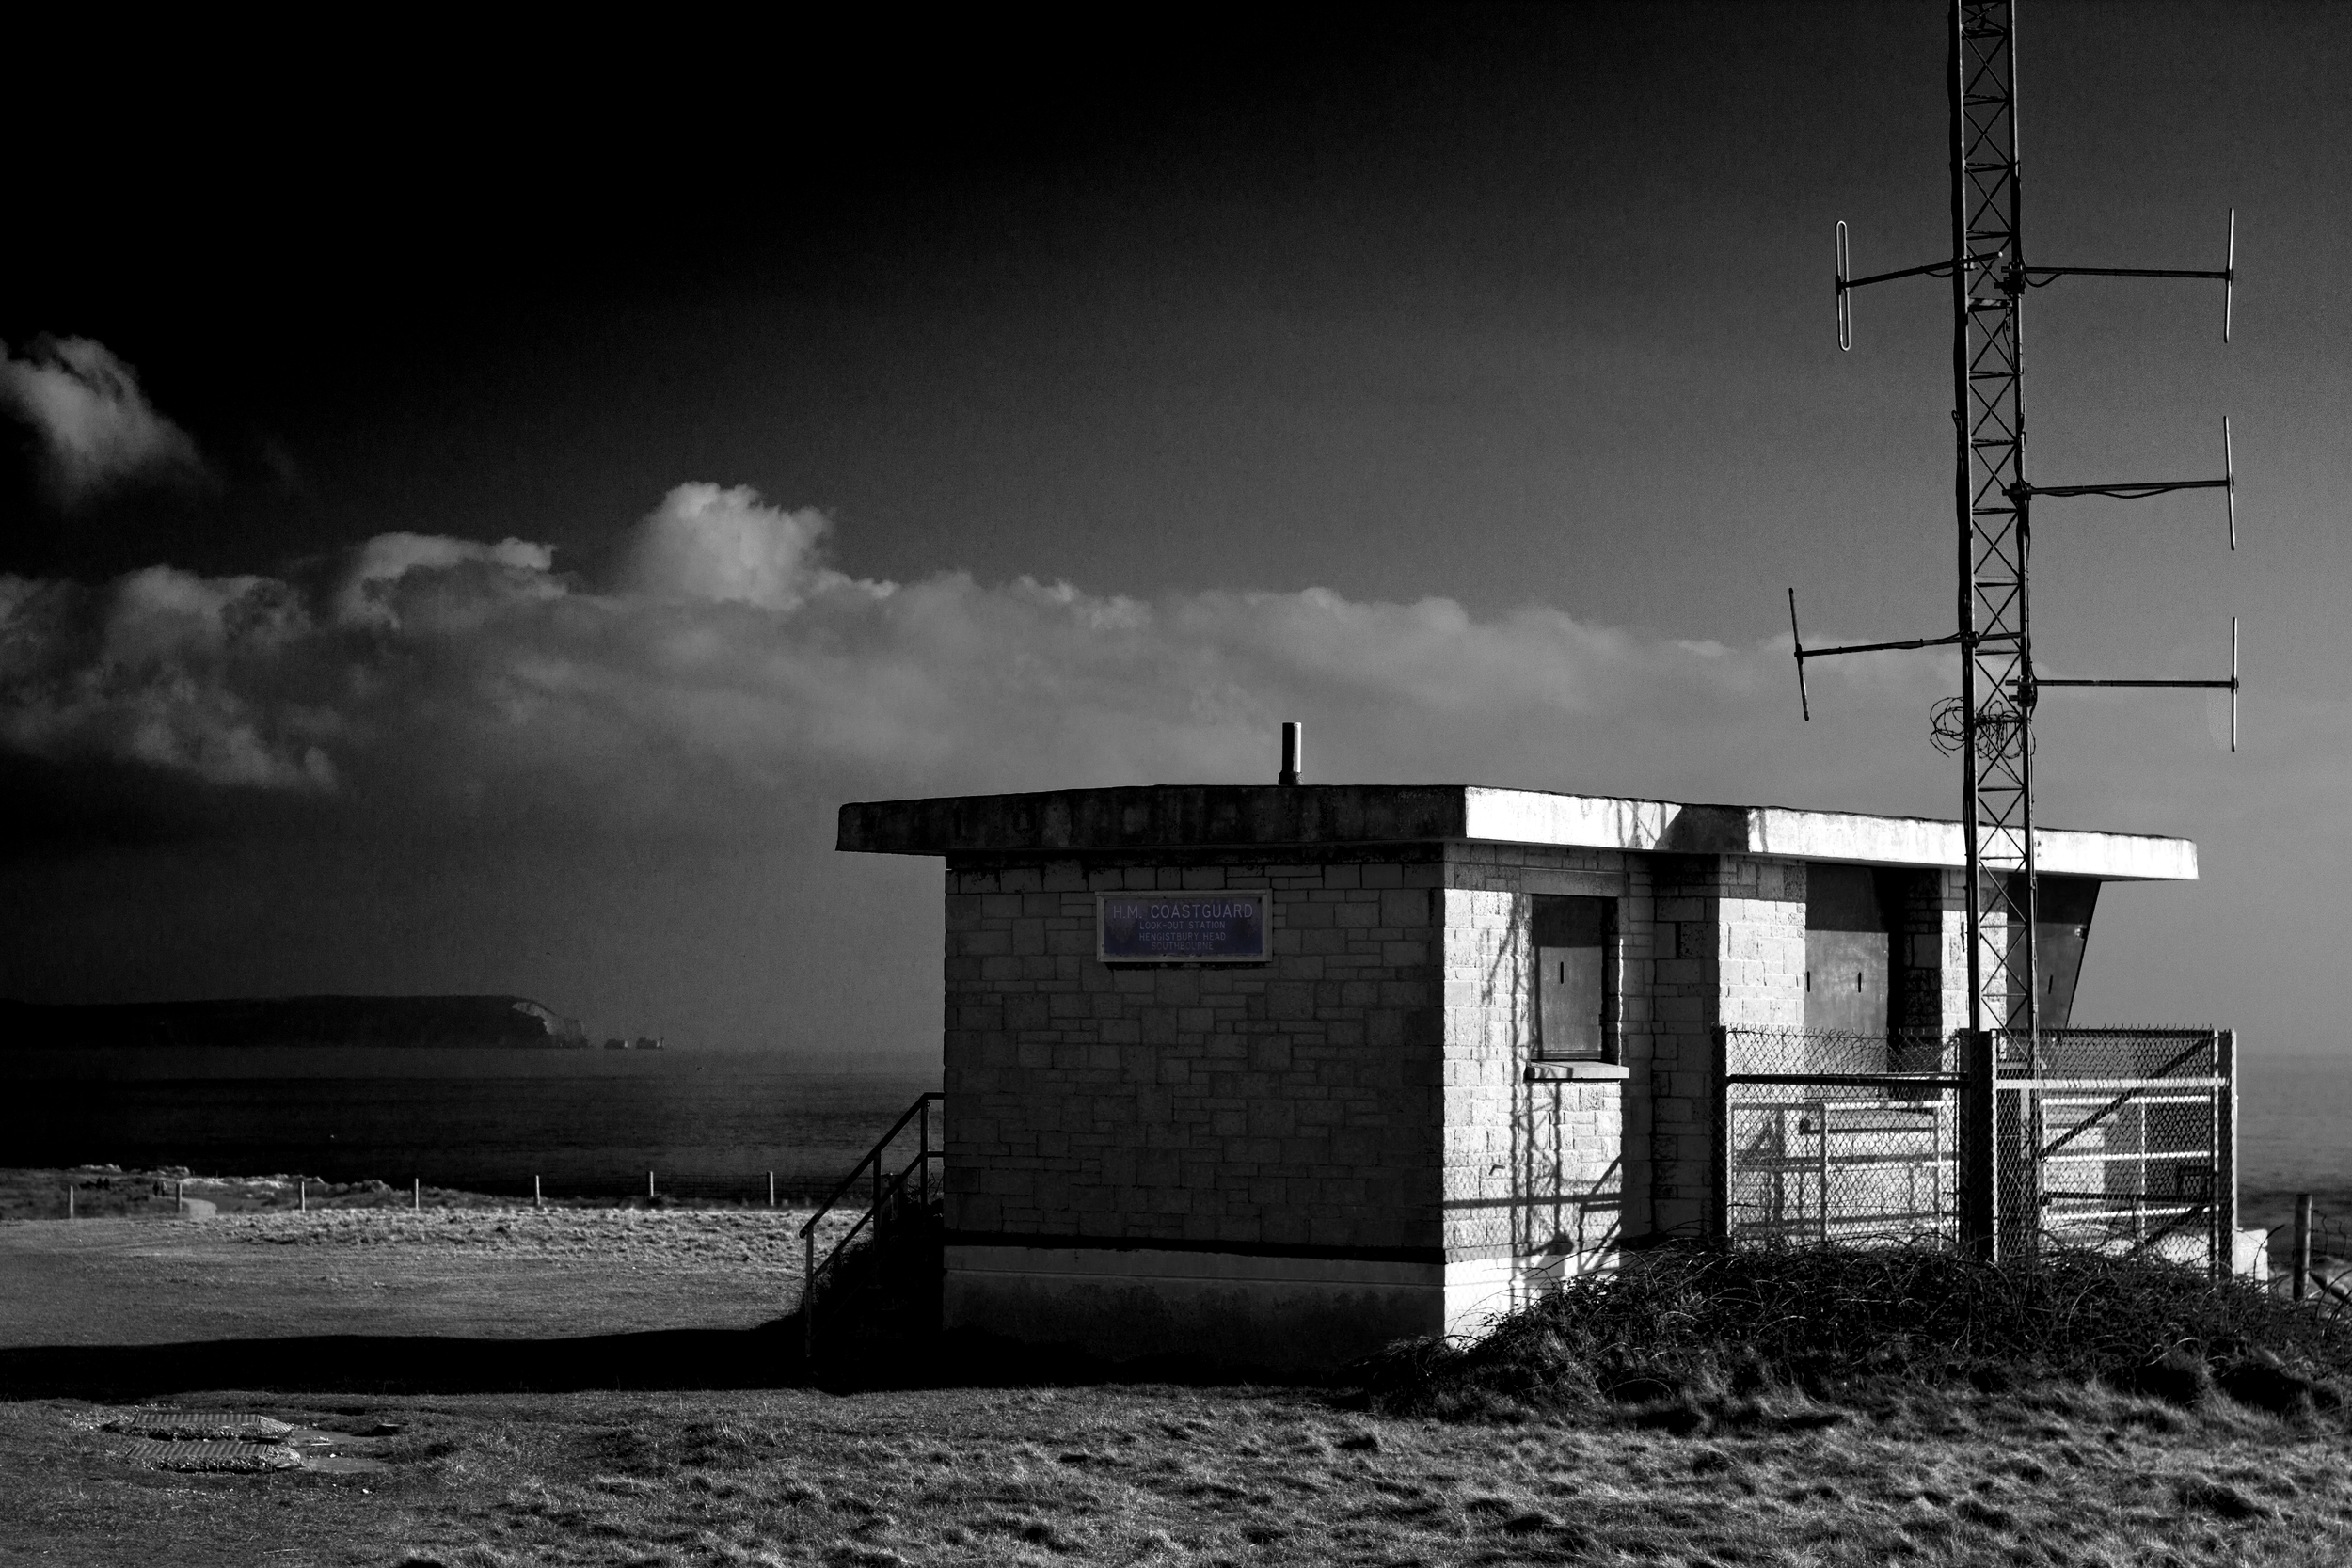 Disused Coastguard lookout